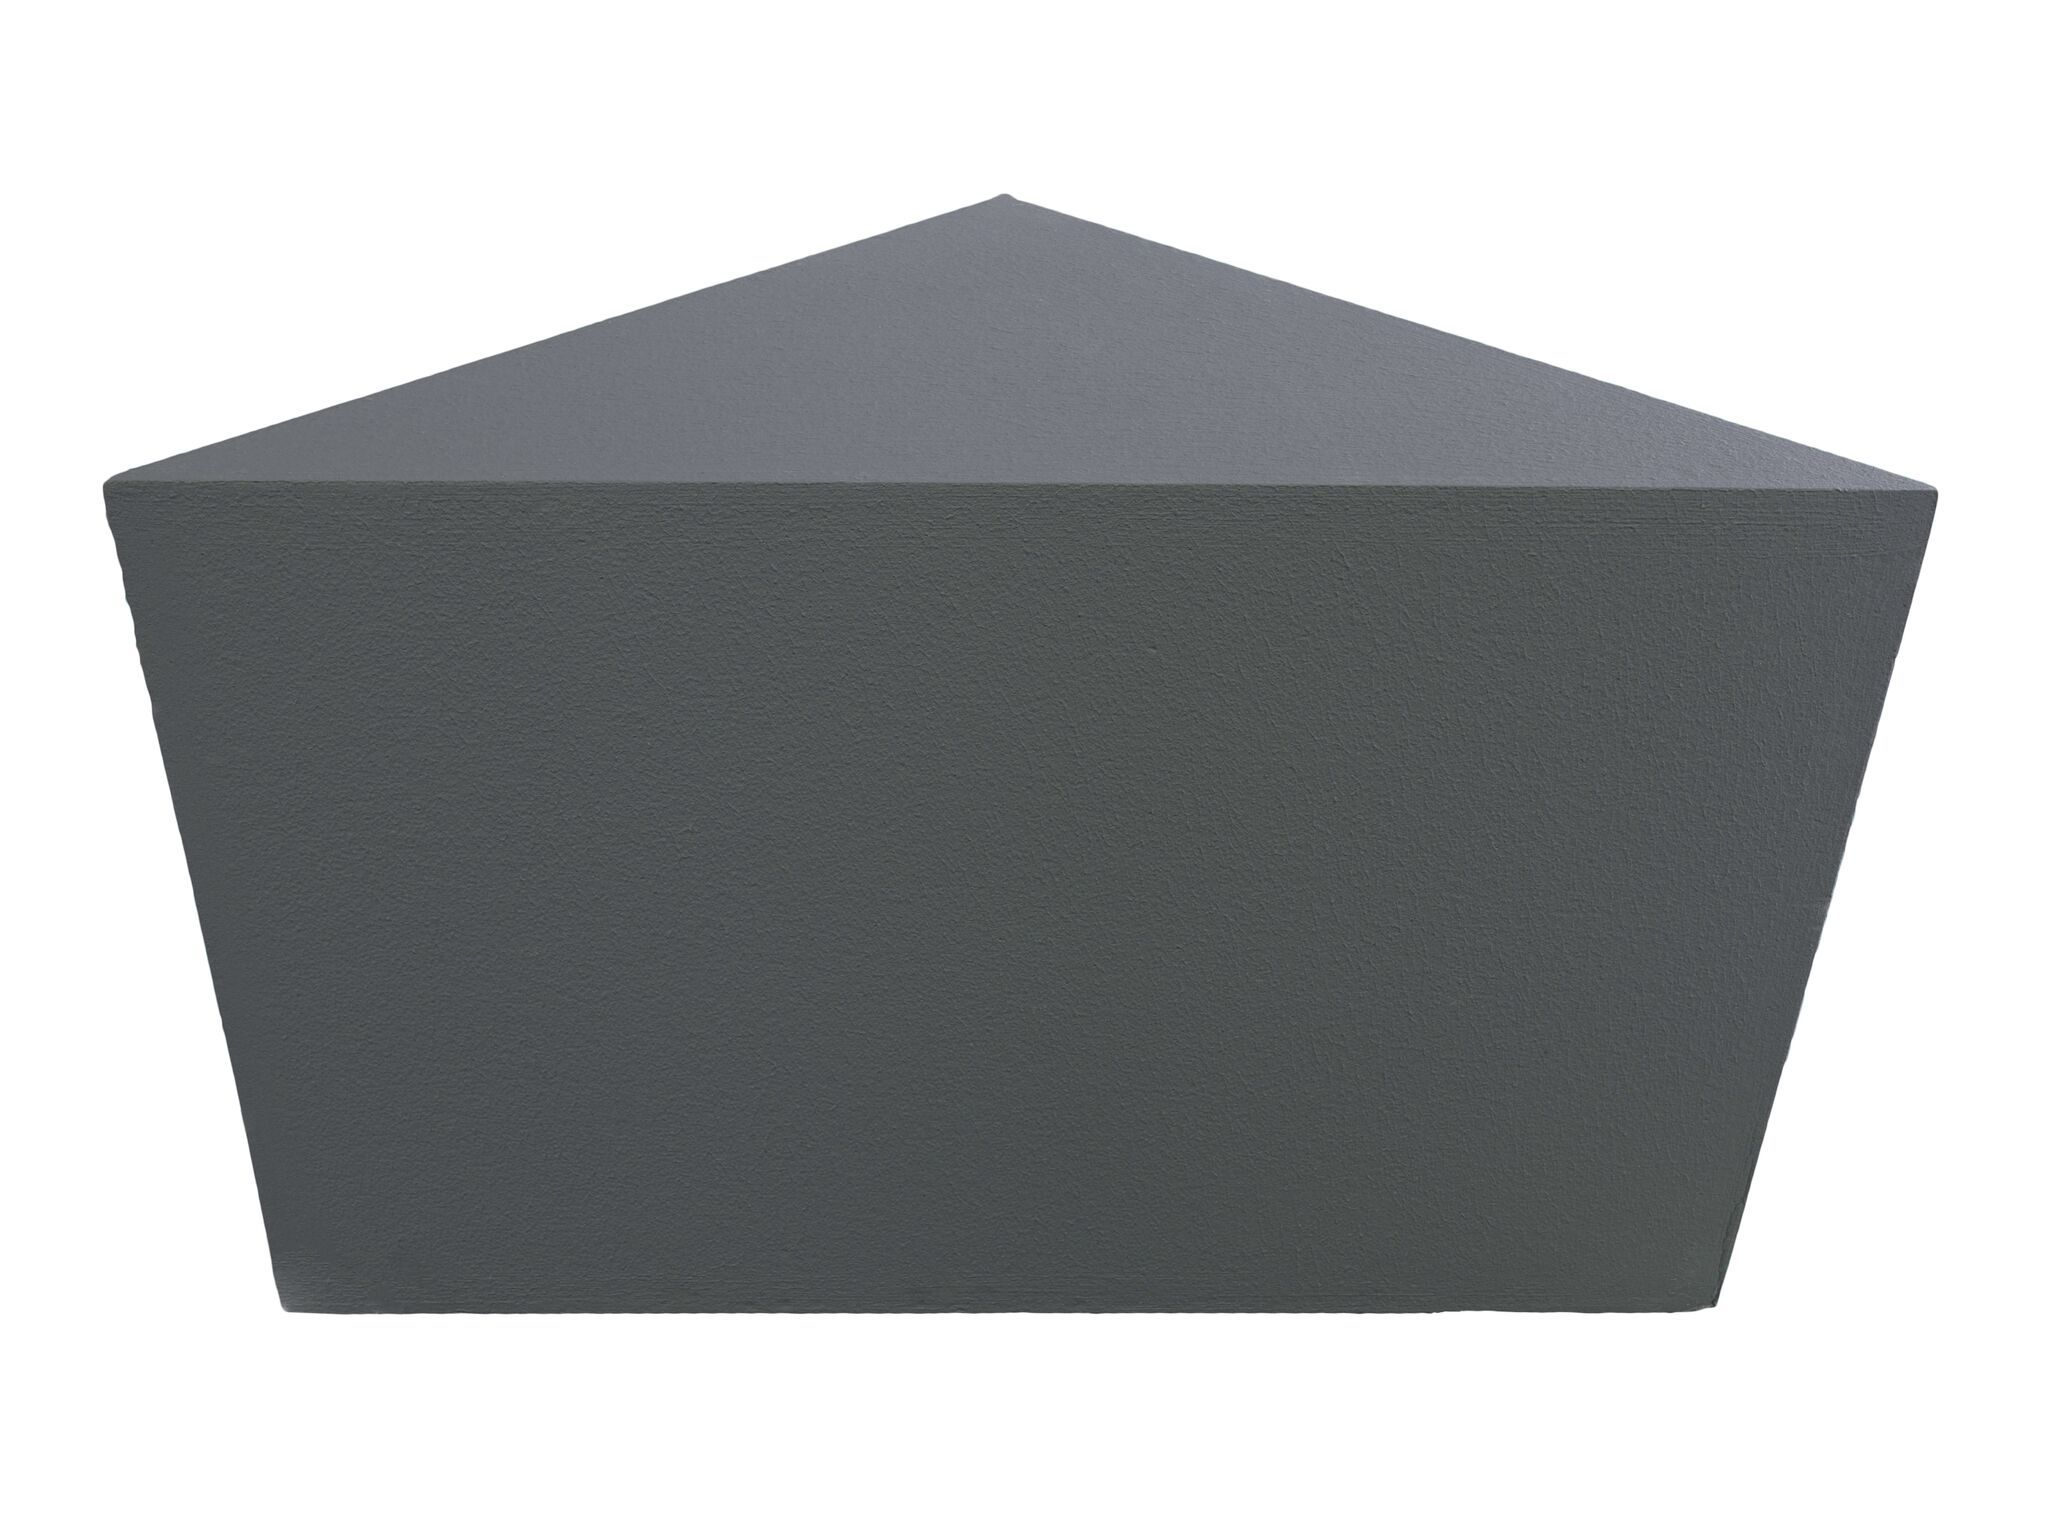 Preformed Triangle Seat Available In 16 X 16 Or 23 X 23